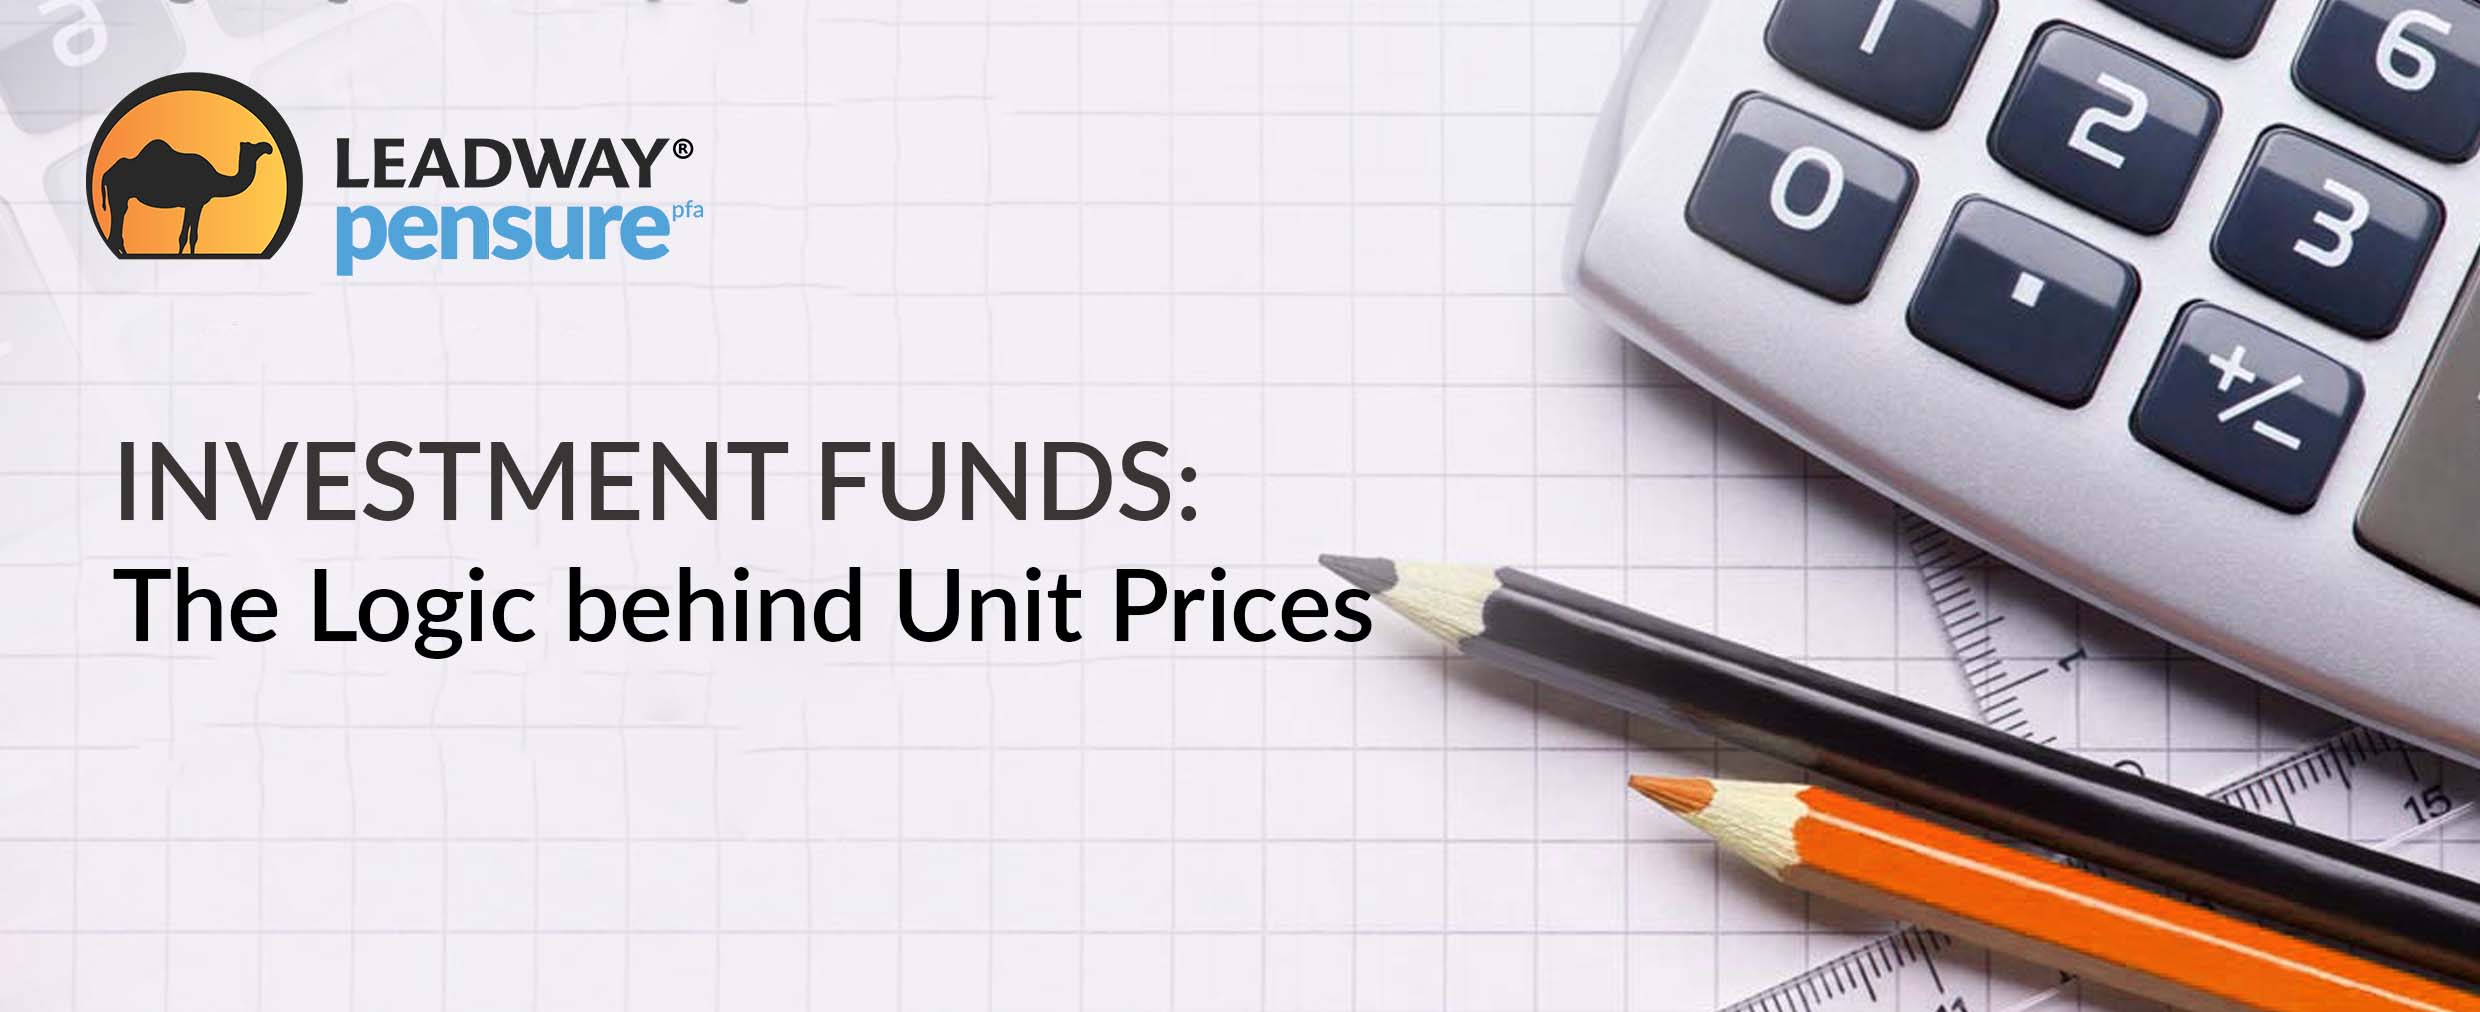 INVESTMENT FUNDS: The Logic behind Unit Prices